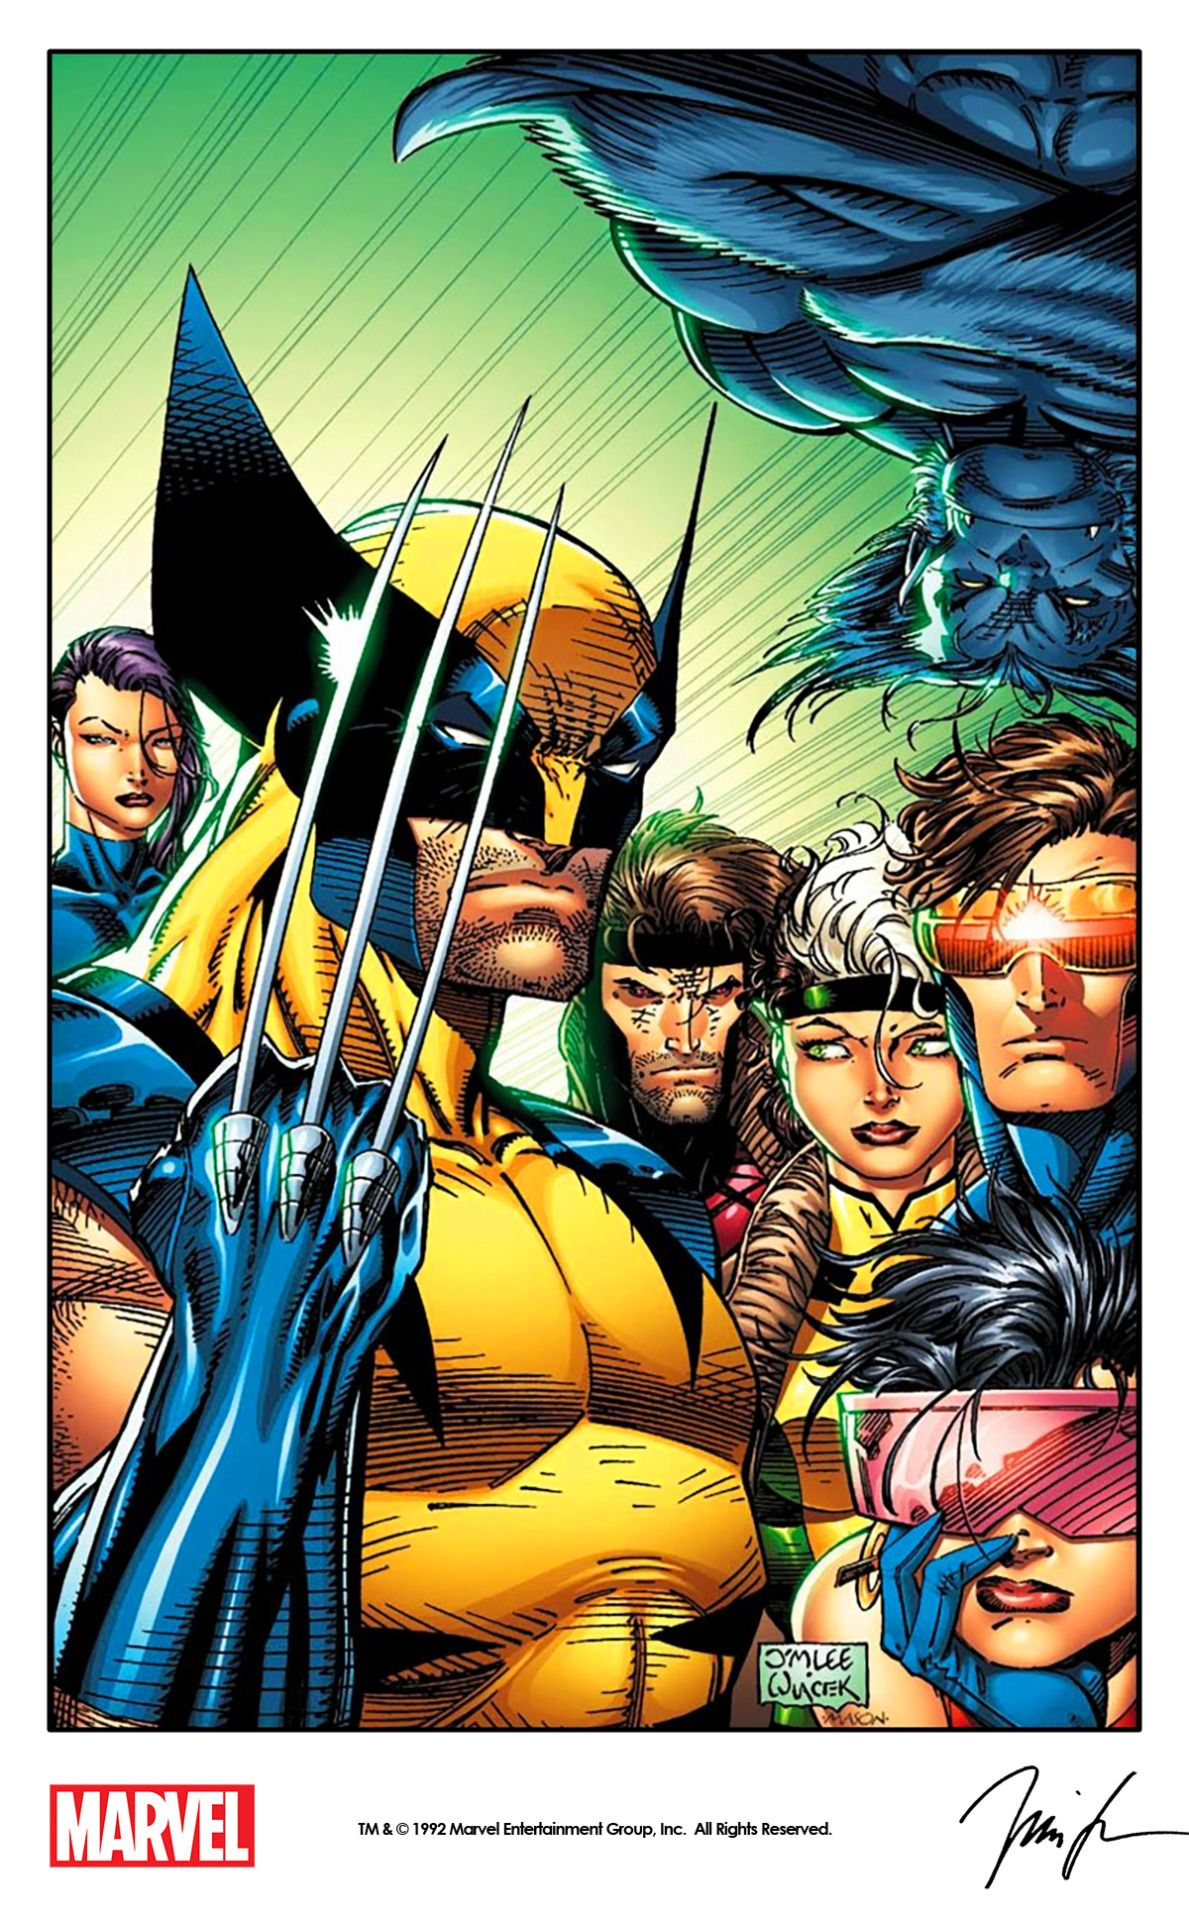 X Men 4 Cover Art By Jim Lee And Bob Wiacek 1992 Remastered By Marvel With Digital Colors By Thomas Mason For The Cover Of X Men B Jim Lee Art Marvel Comics